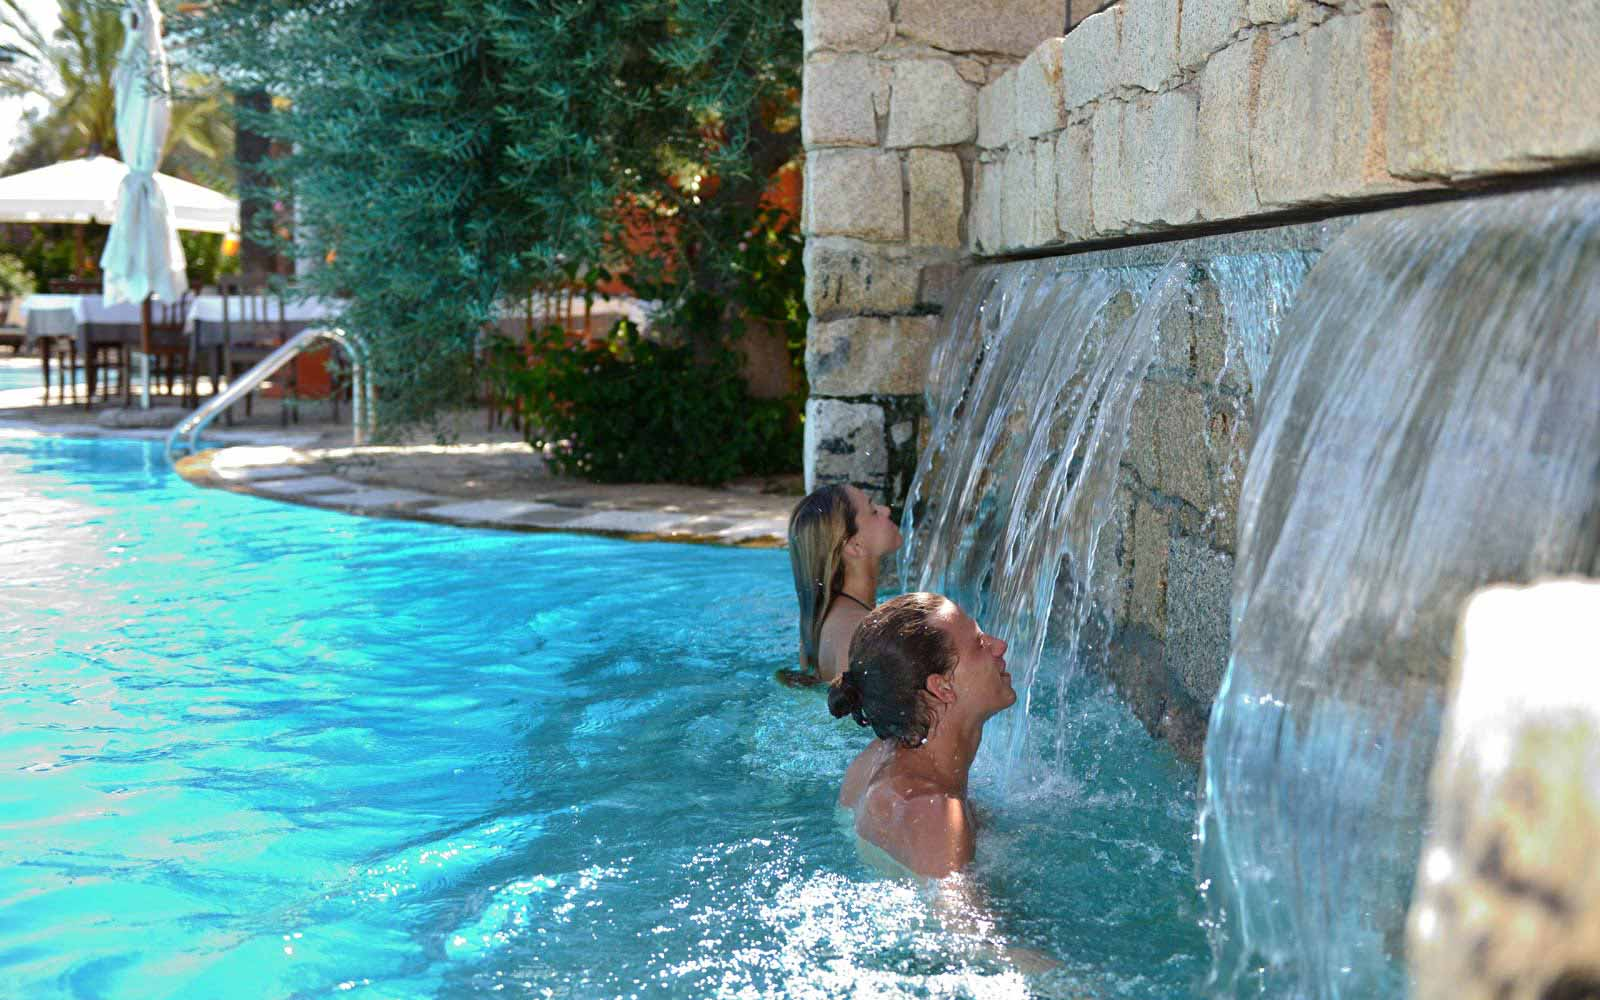 Swimming pool hydrojets at Galanias Hotel